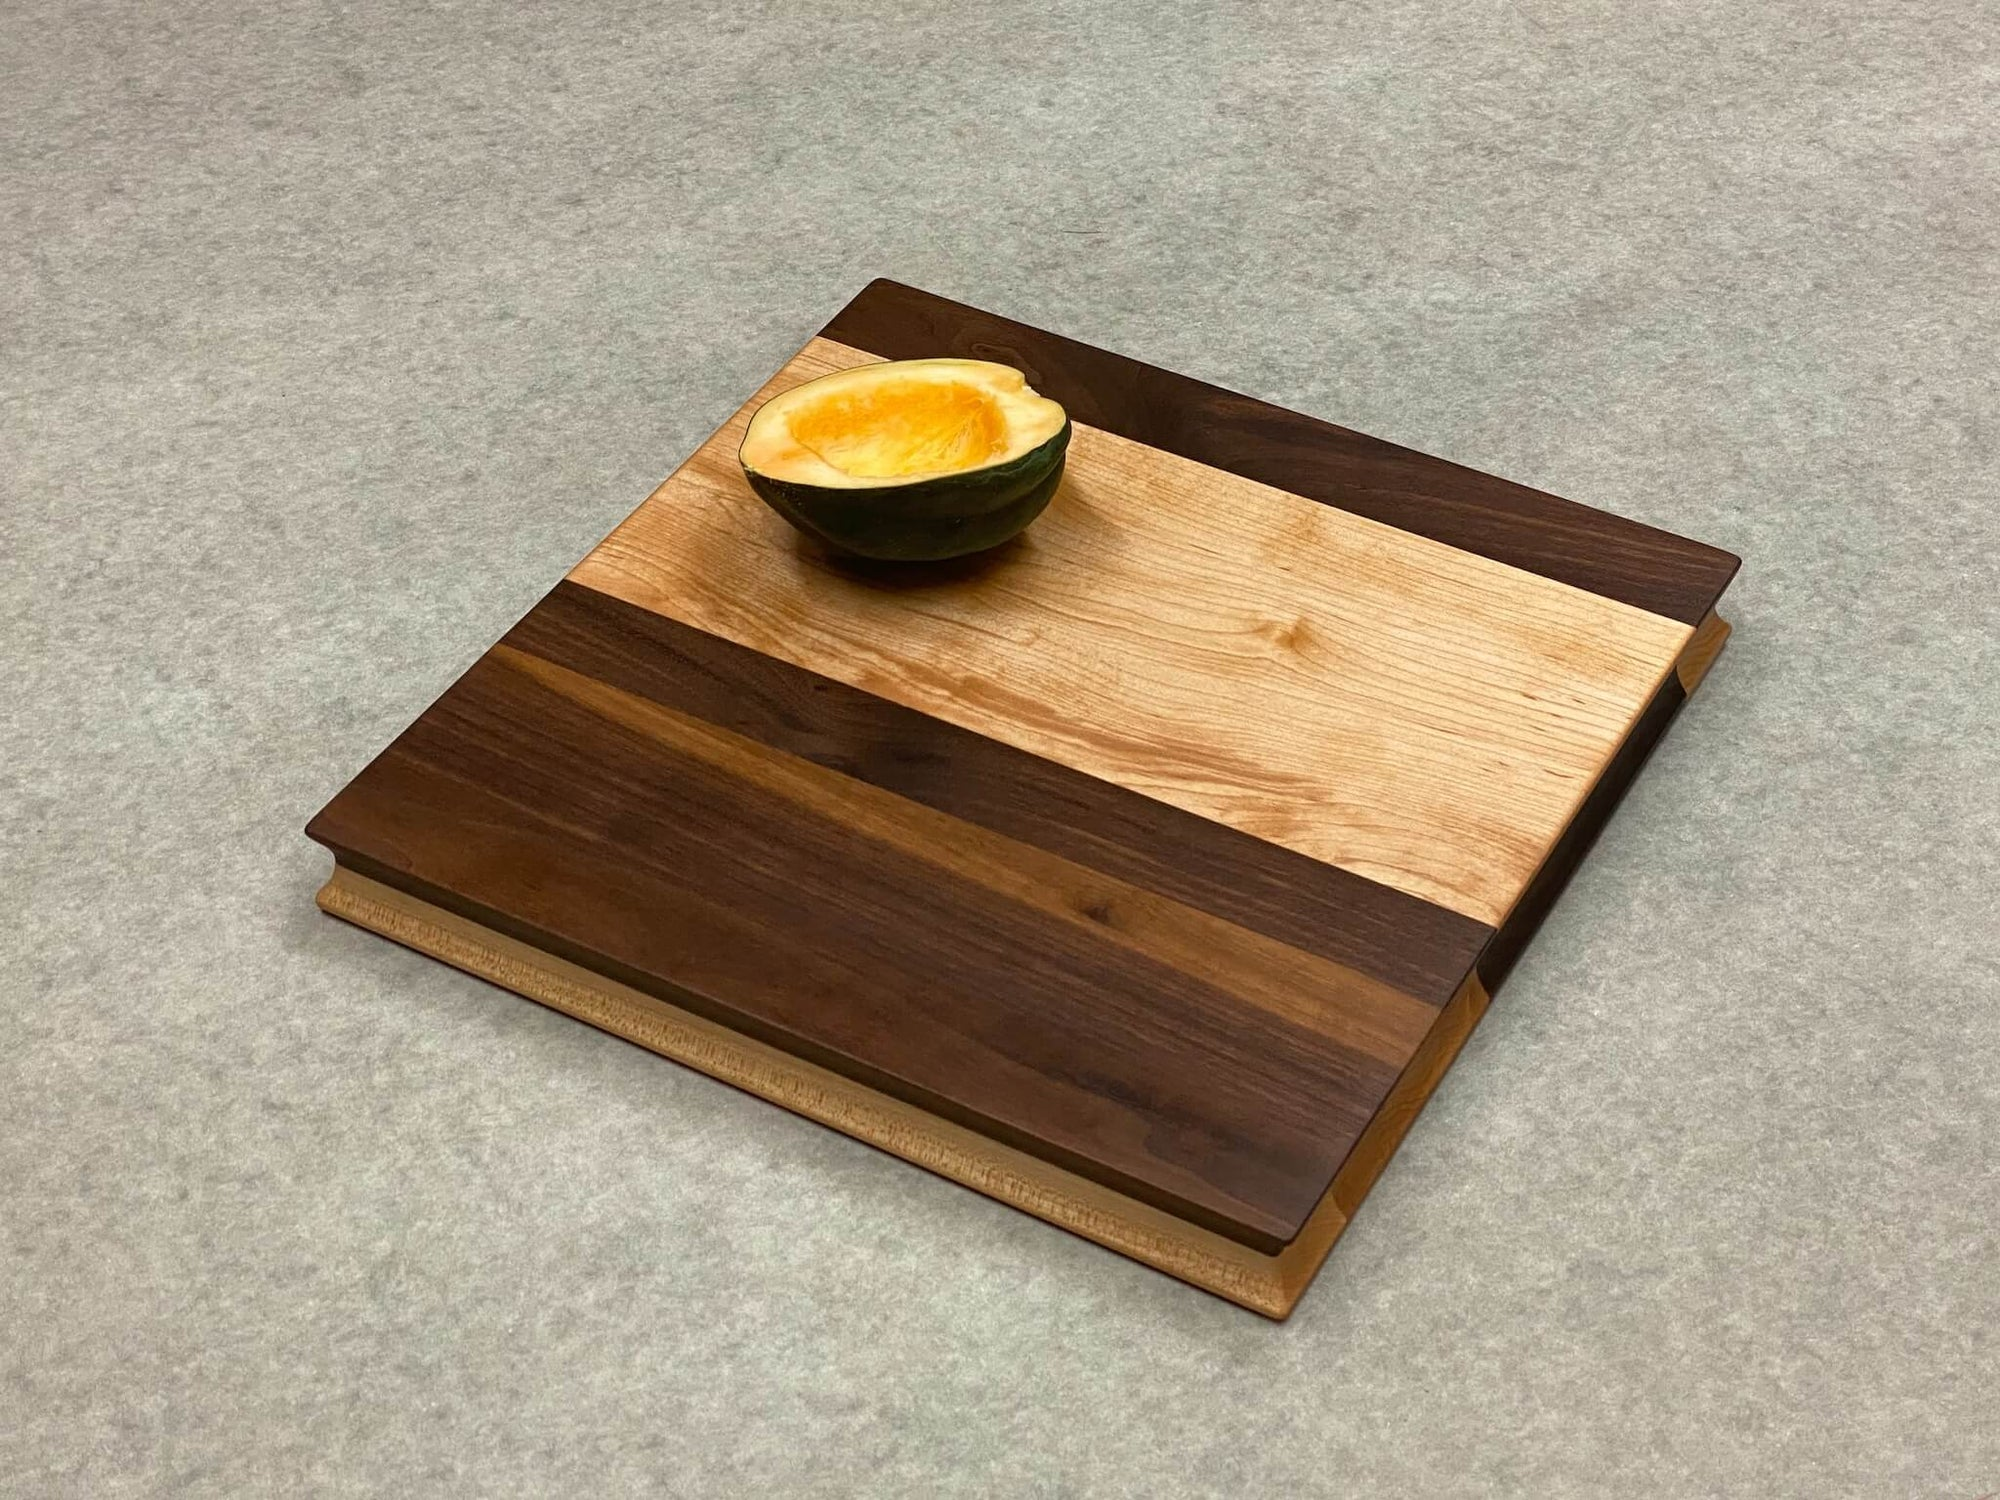 Colorblock Square Board in Walnut and Maple